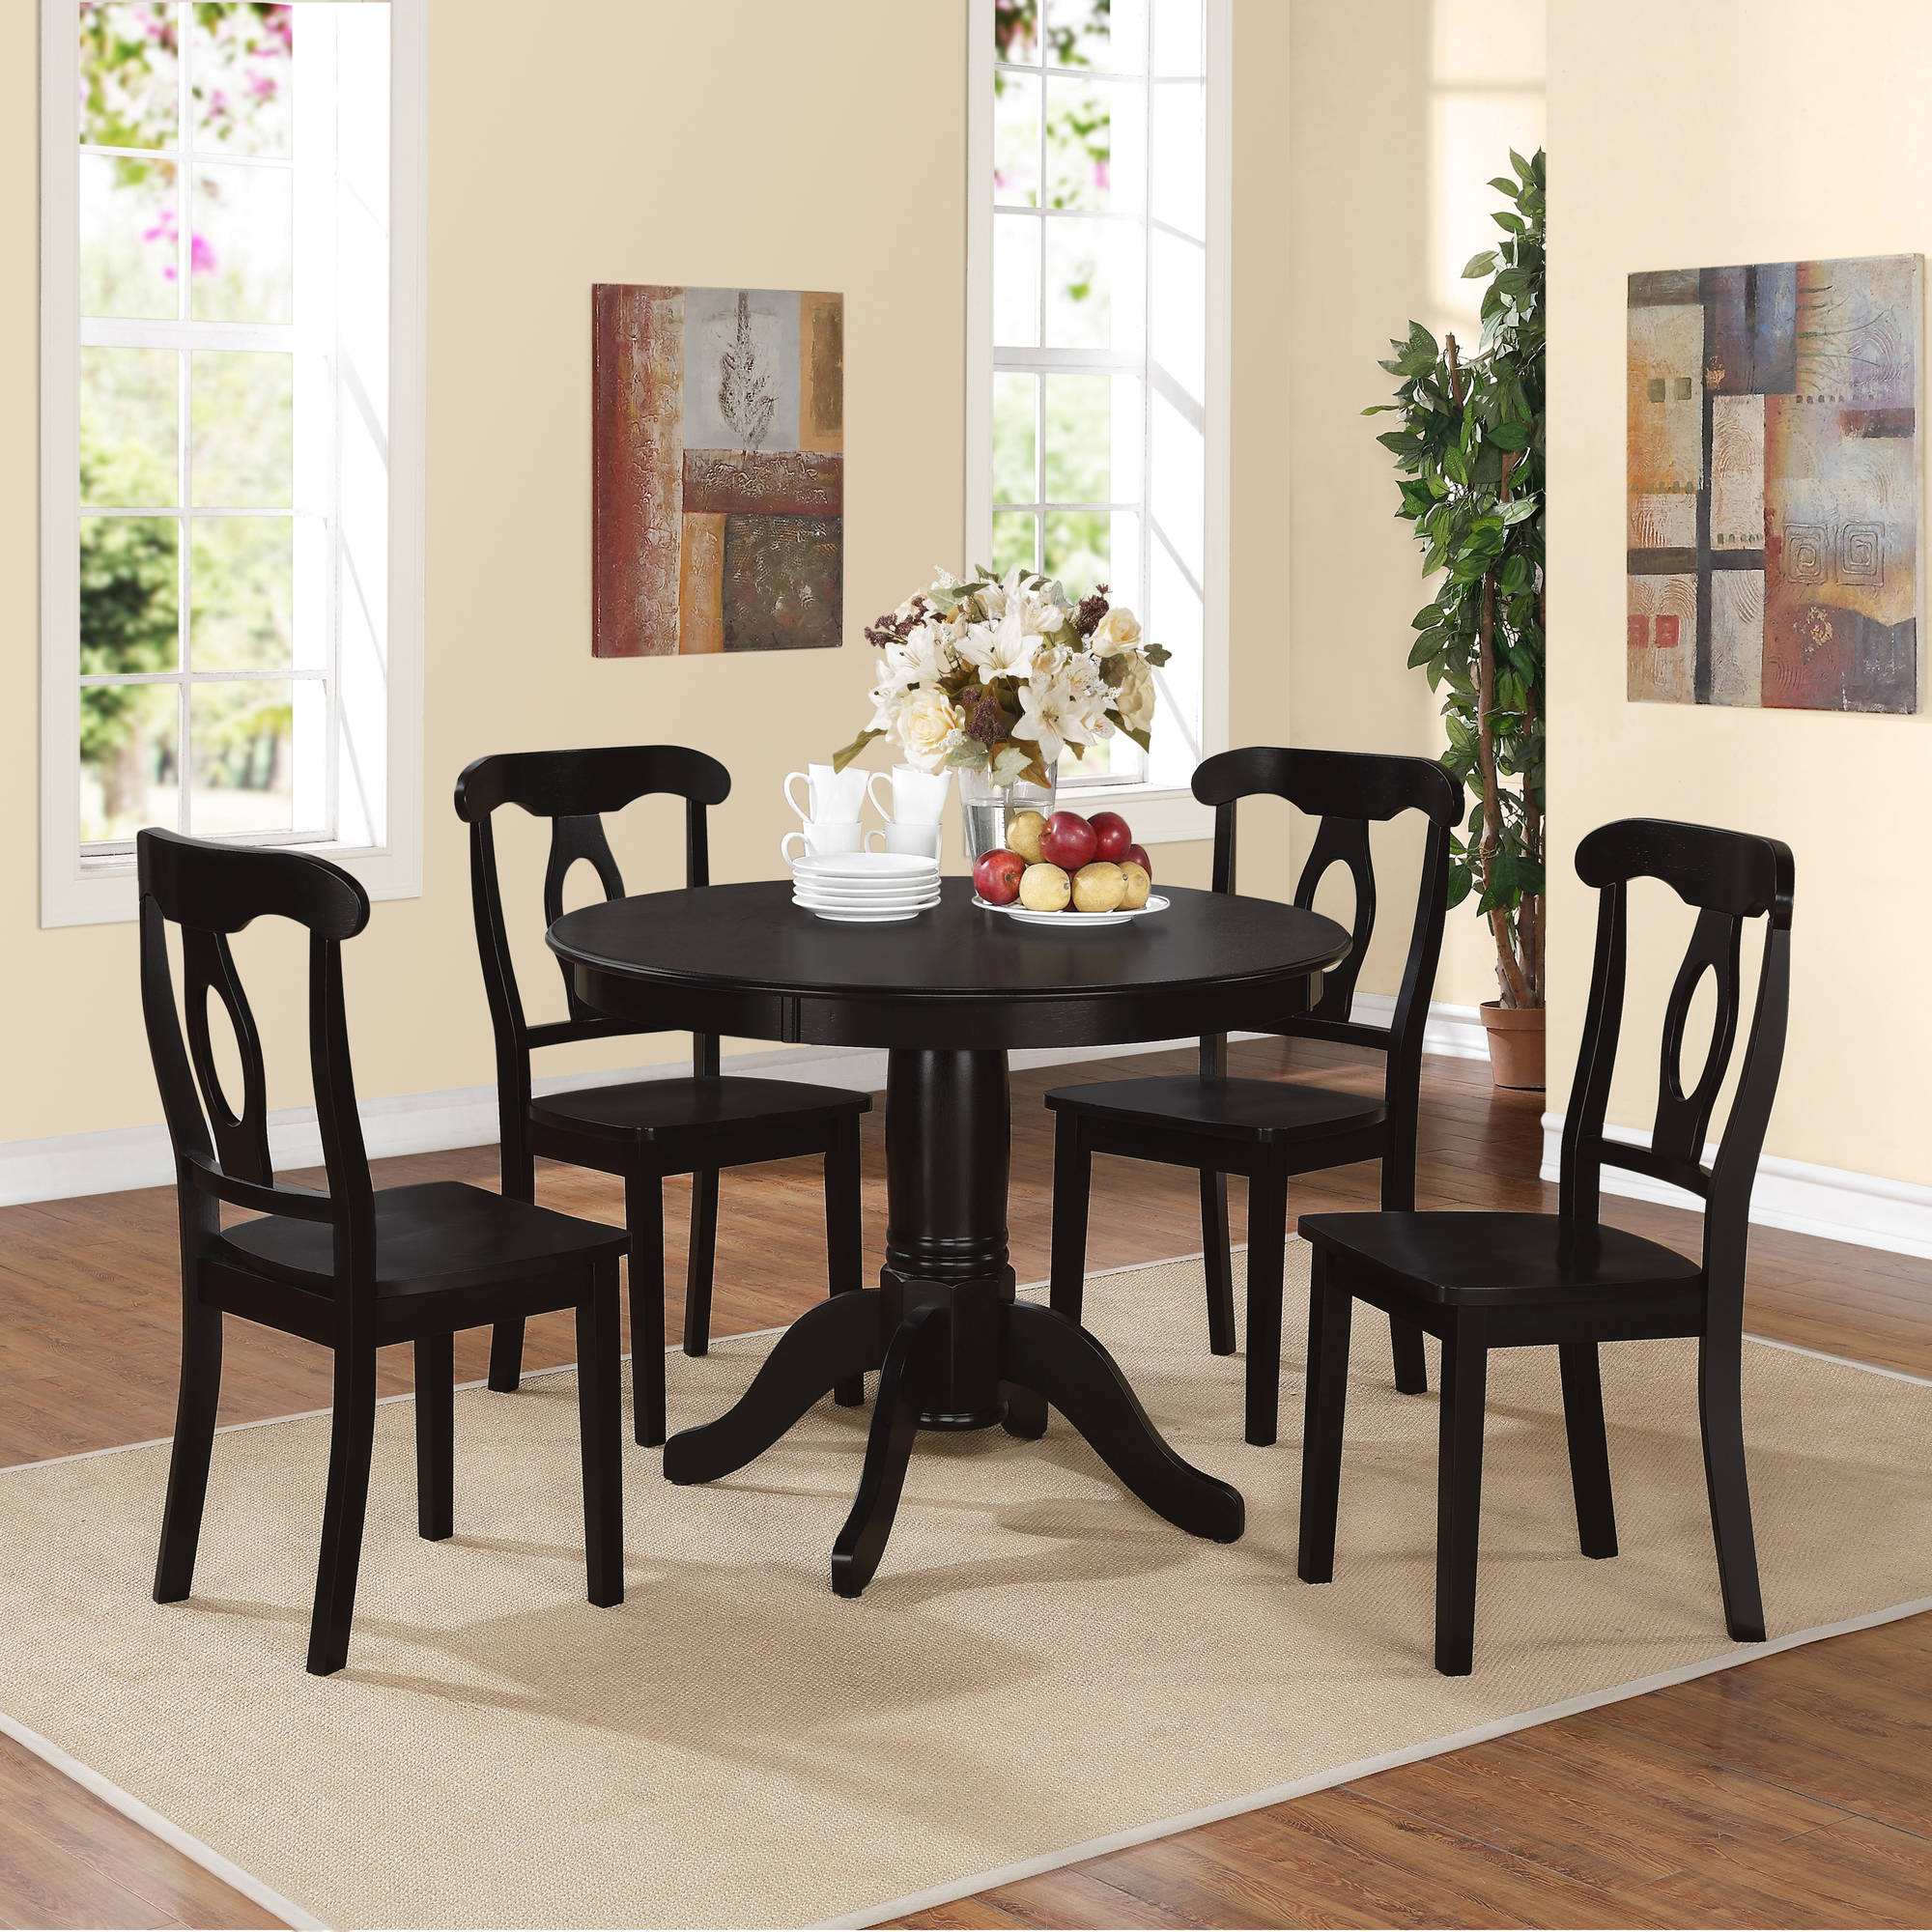 Aubrey 5-Piece Traditional Height Pedestal Dining Set, Multiple Colors